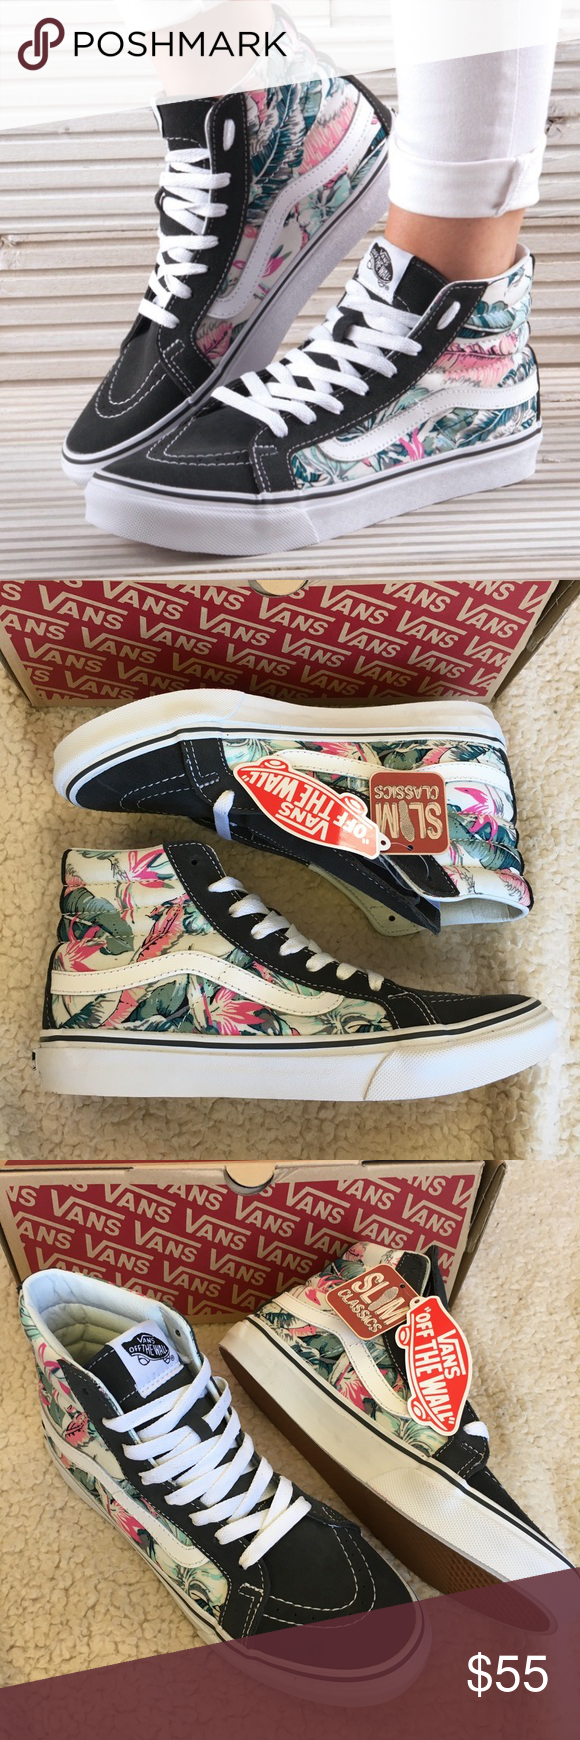 79260b7779 NWT Vans Sk8-Hi Slim Tropical Sneakers